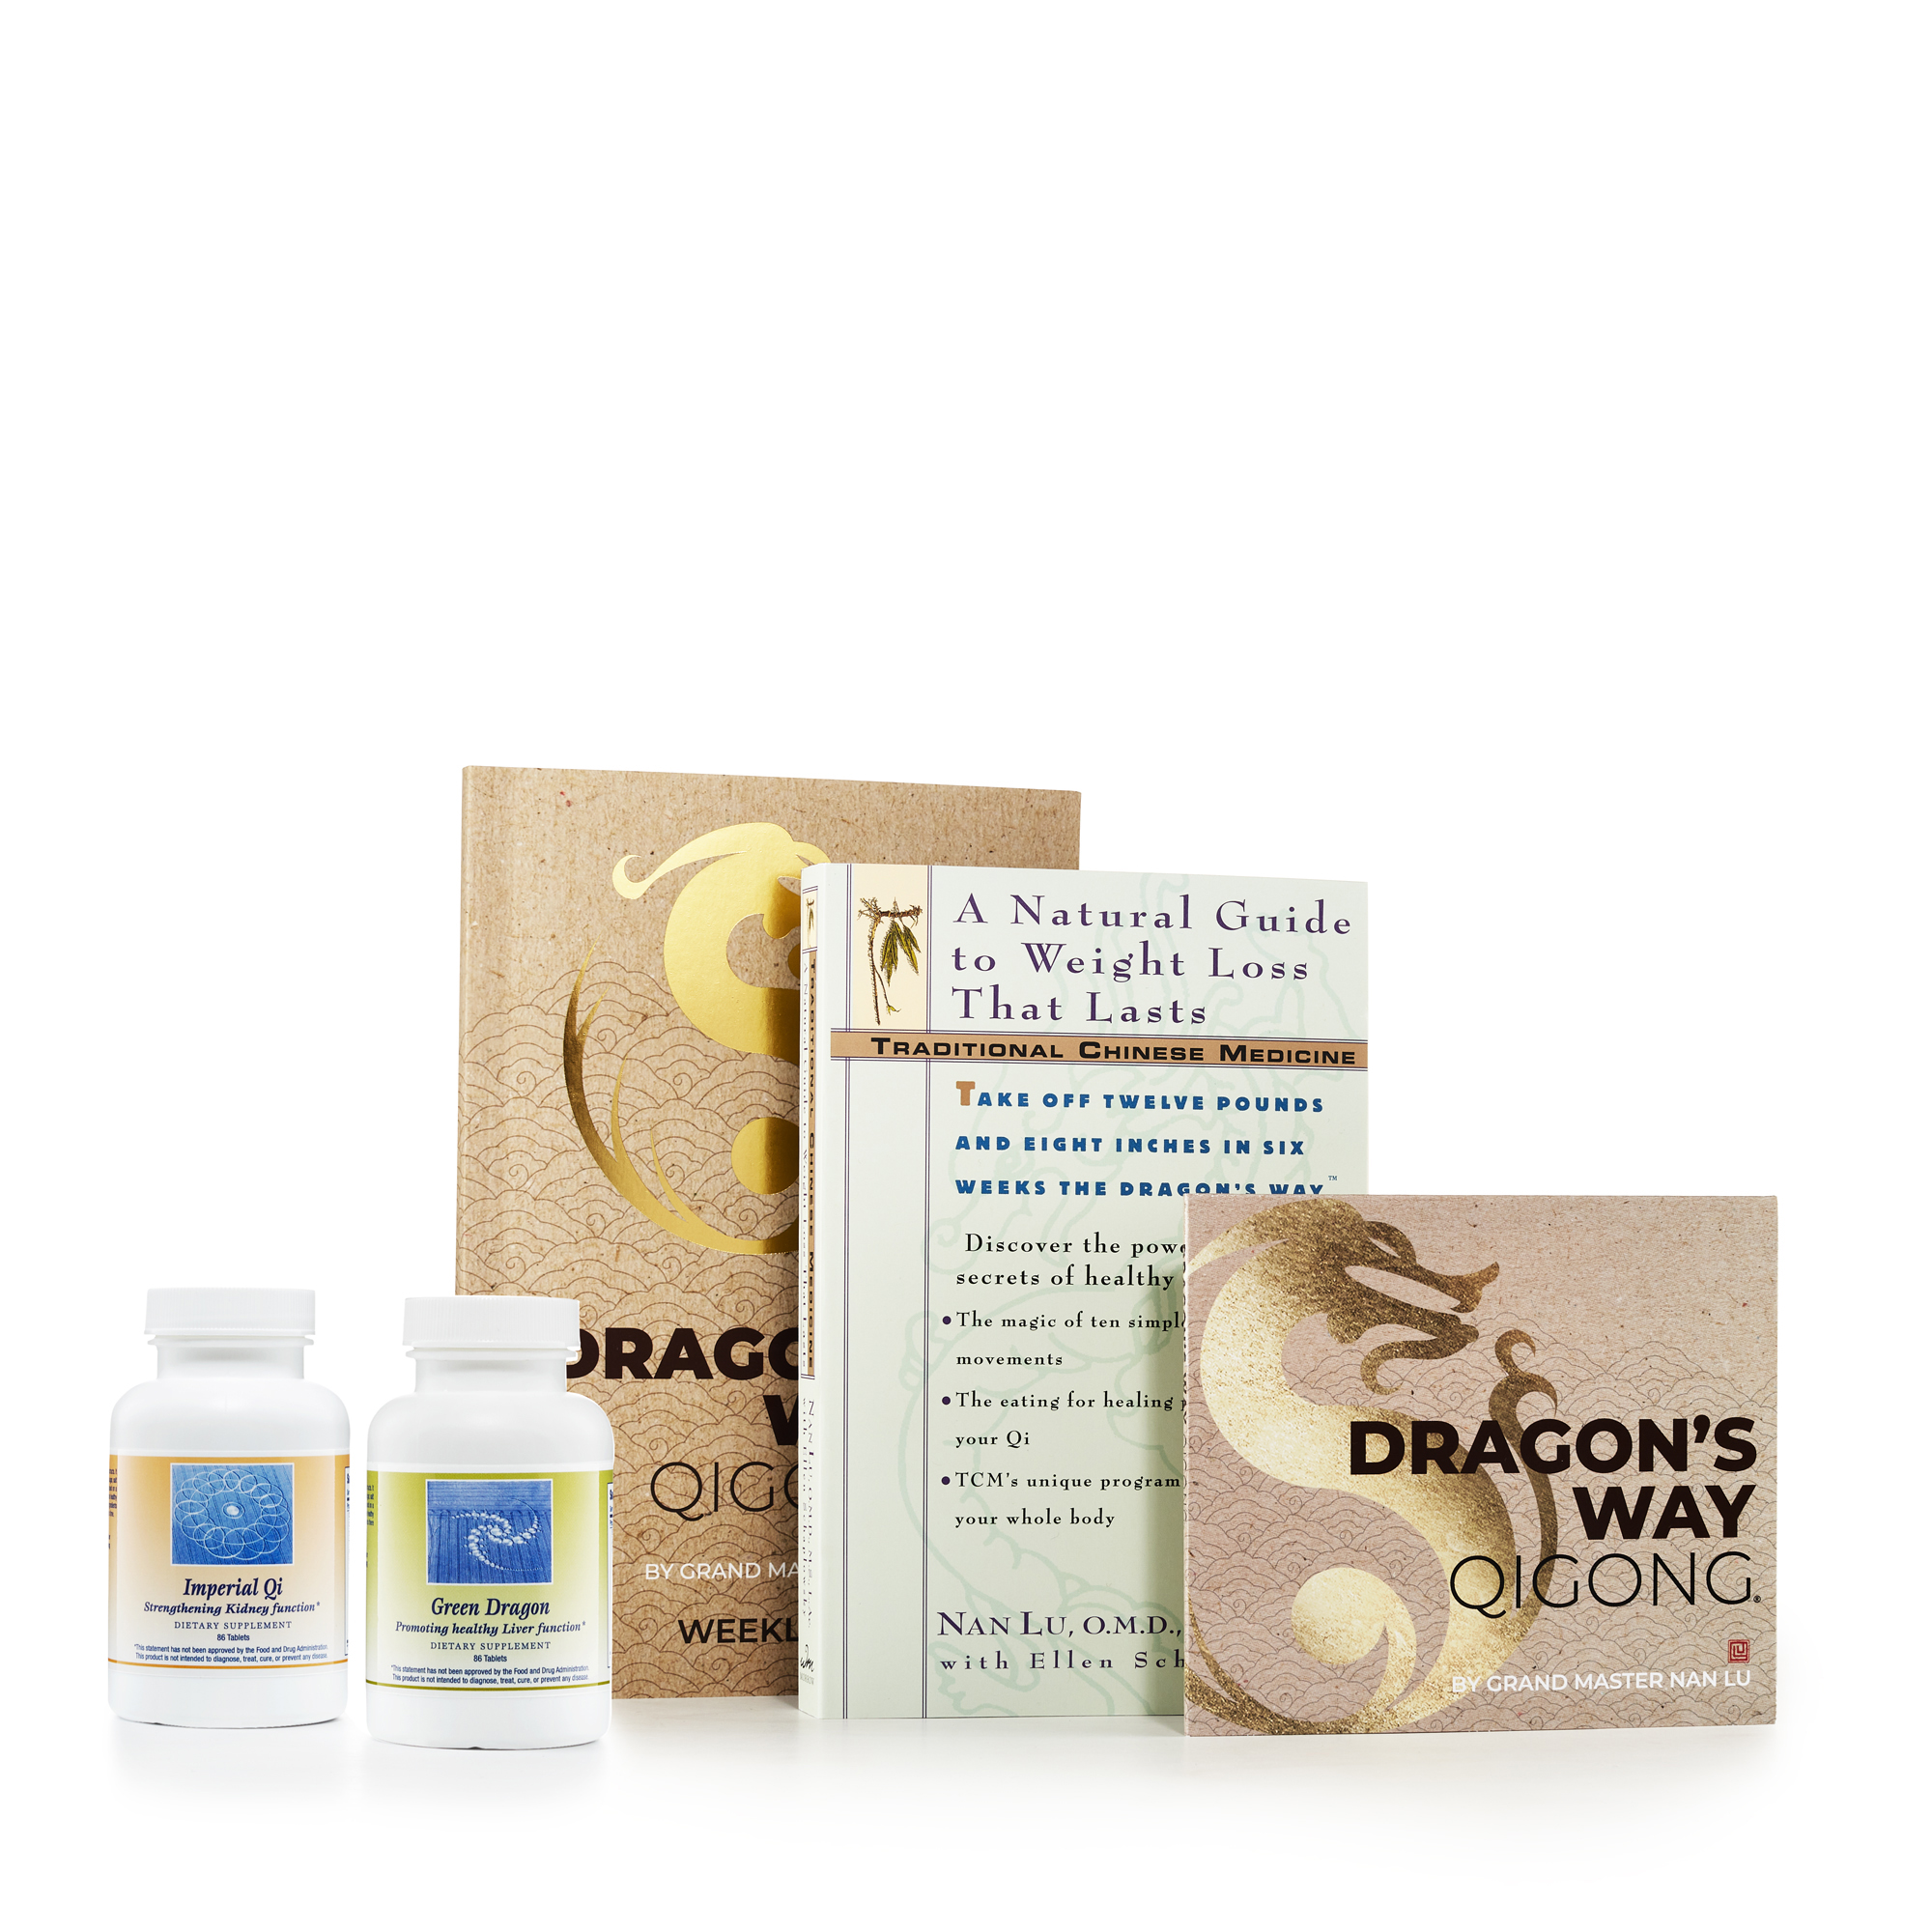 Dragon's Way Qigong starter kit